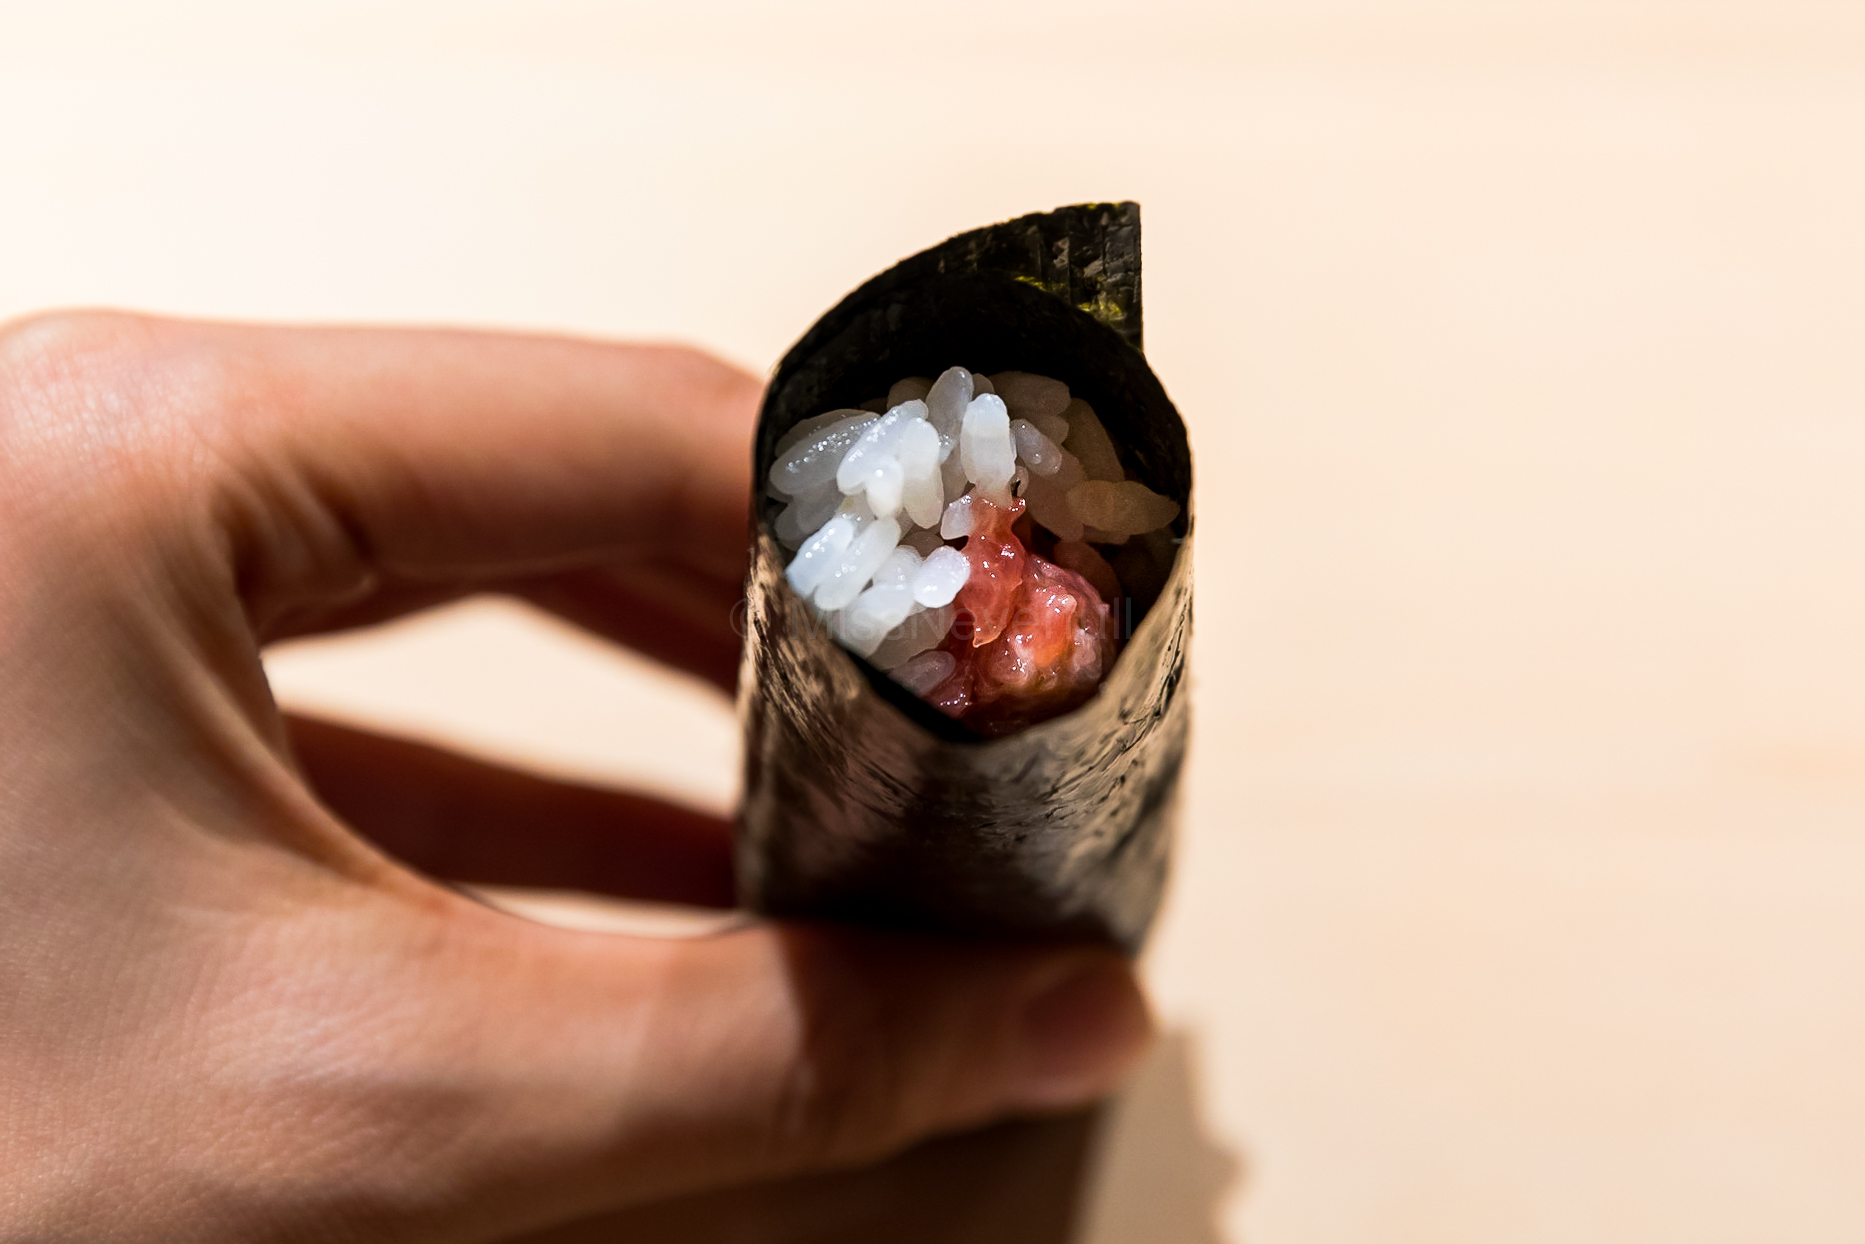 Not yet satisfying...so an additional toro temaki (handroll)